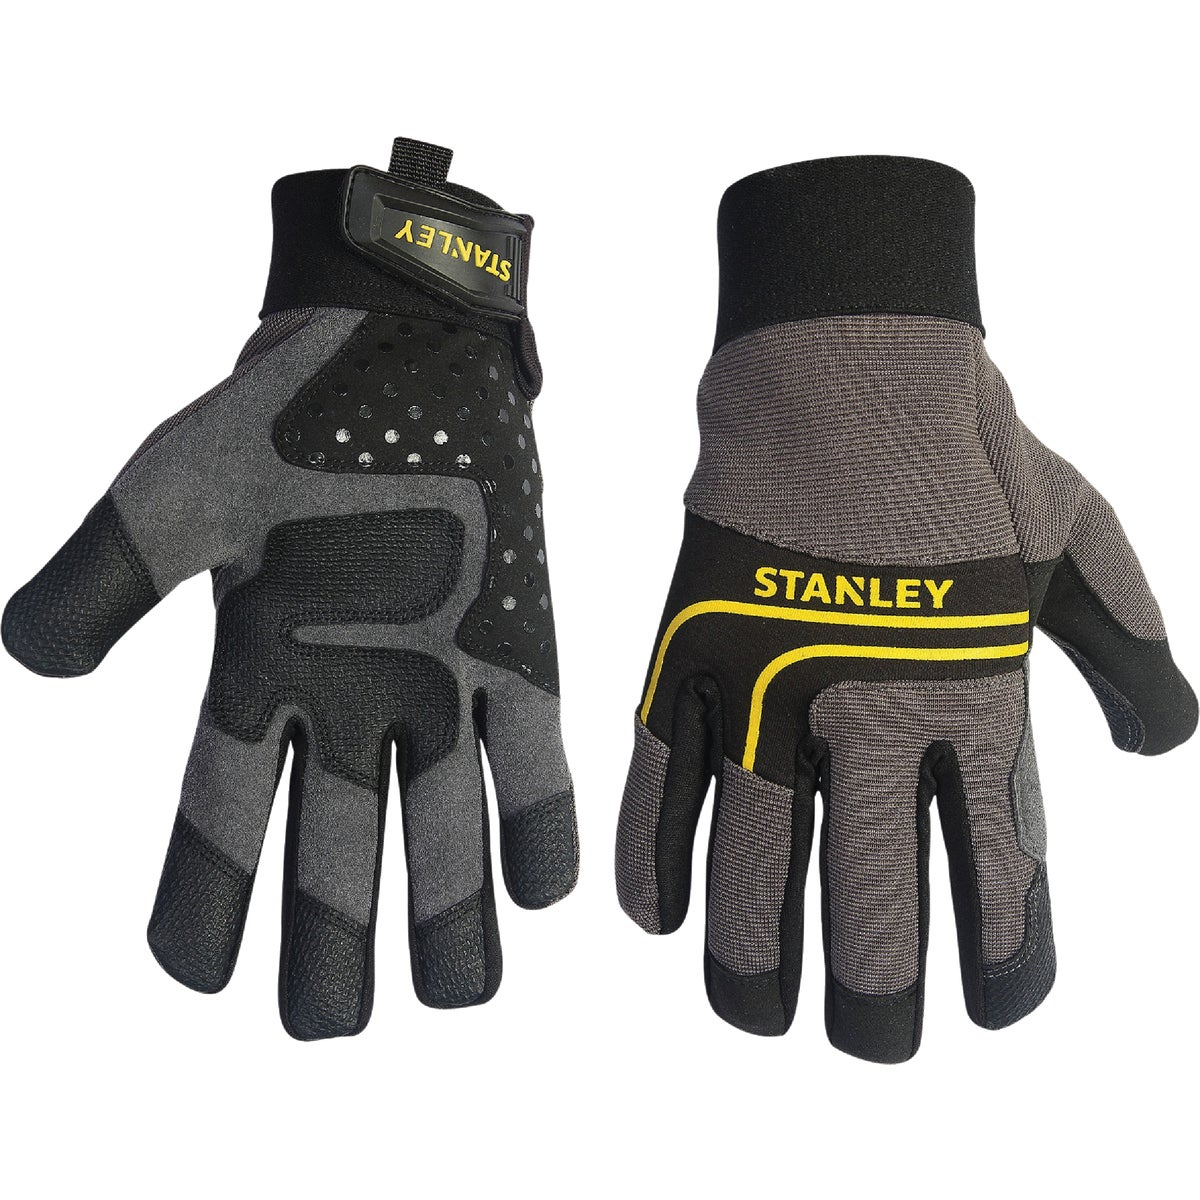 LRG WORK CREW GLOVE - WCG-04-L by Ironclad Performance